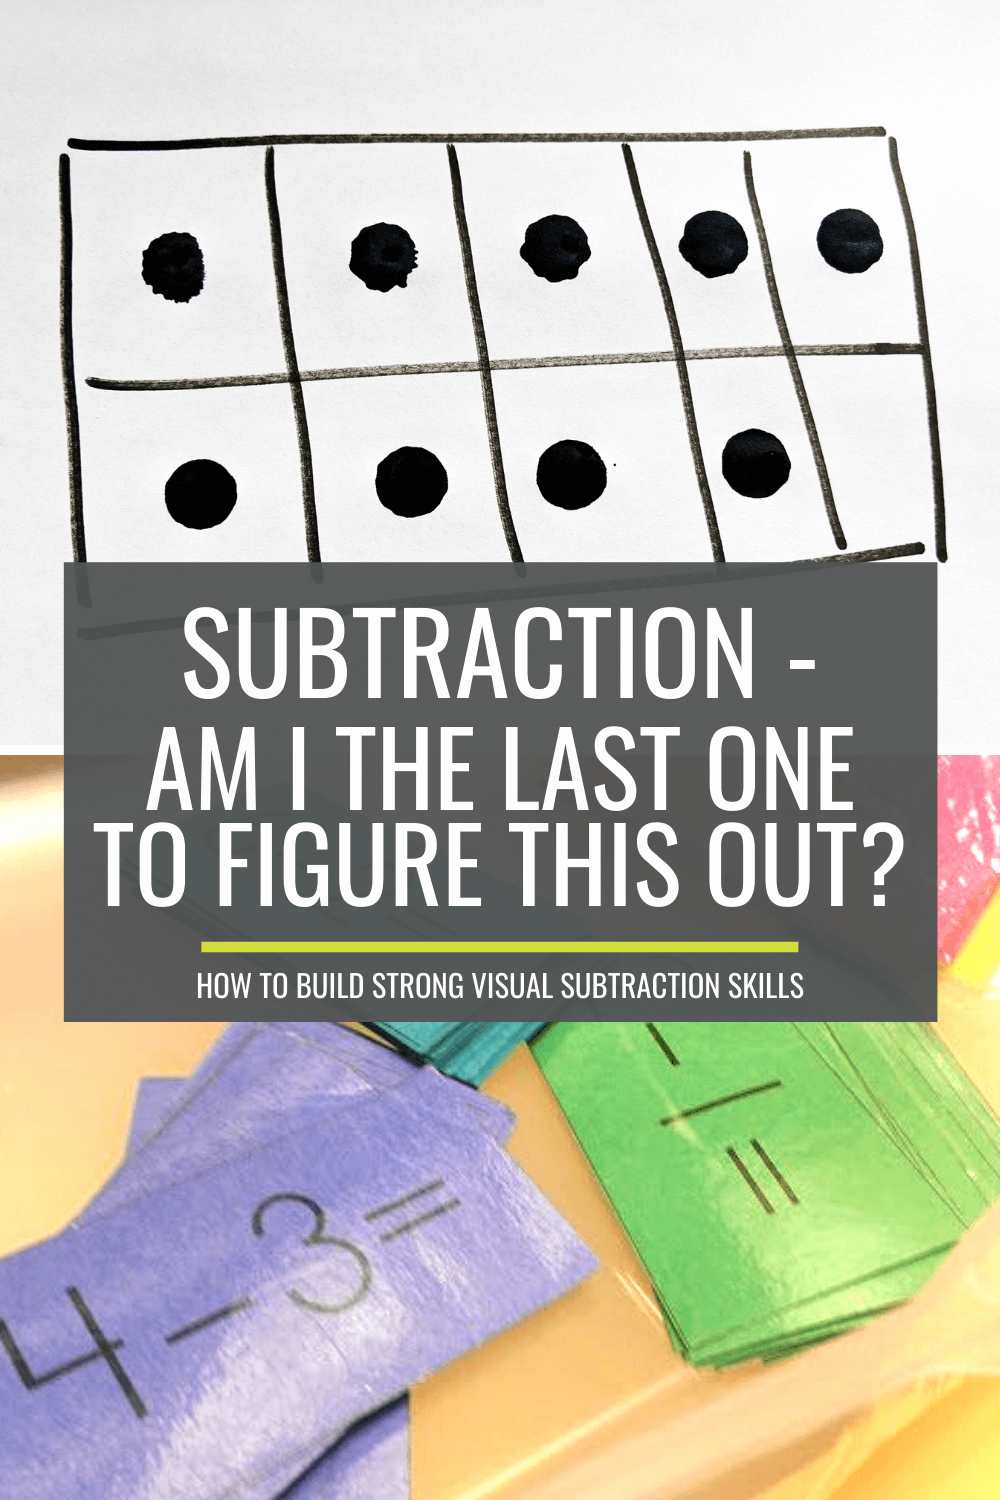 Subtraction - Am I the Last One to Figure This Out?